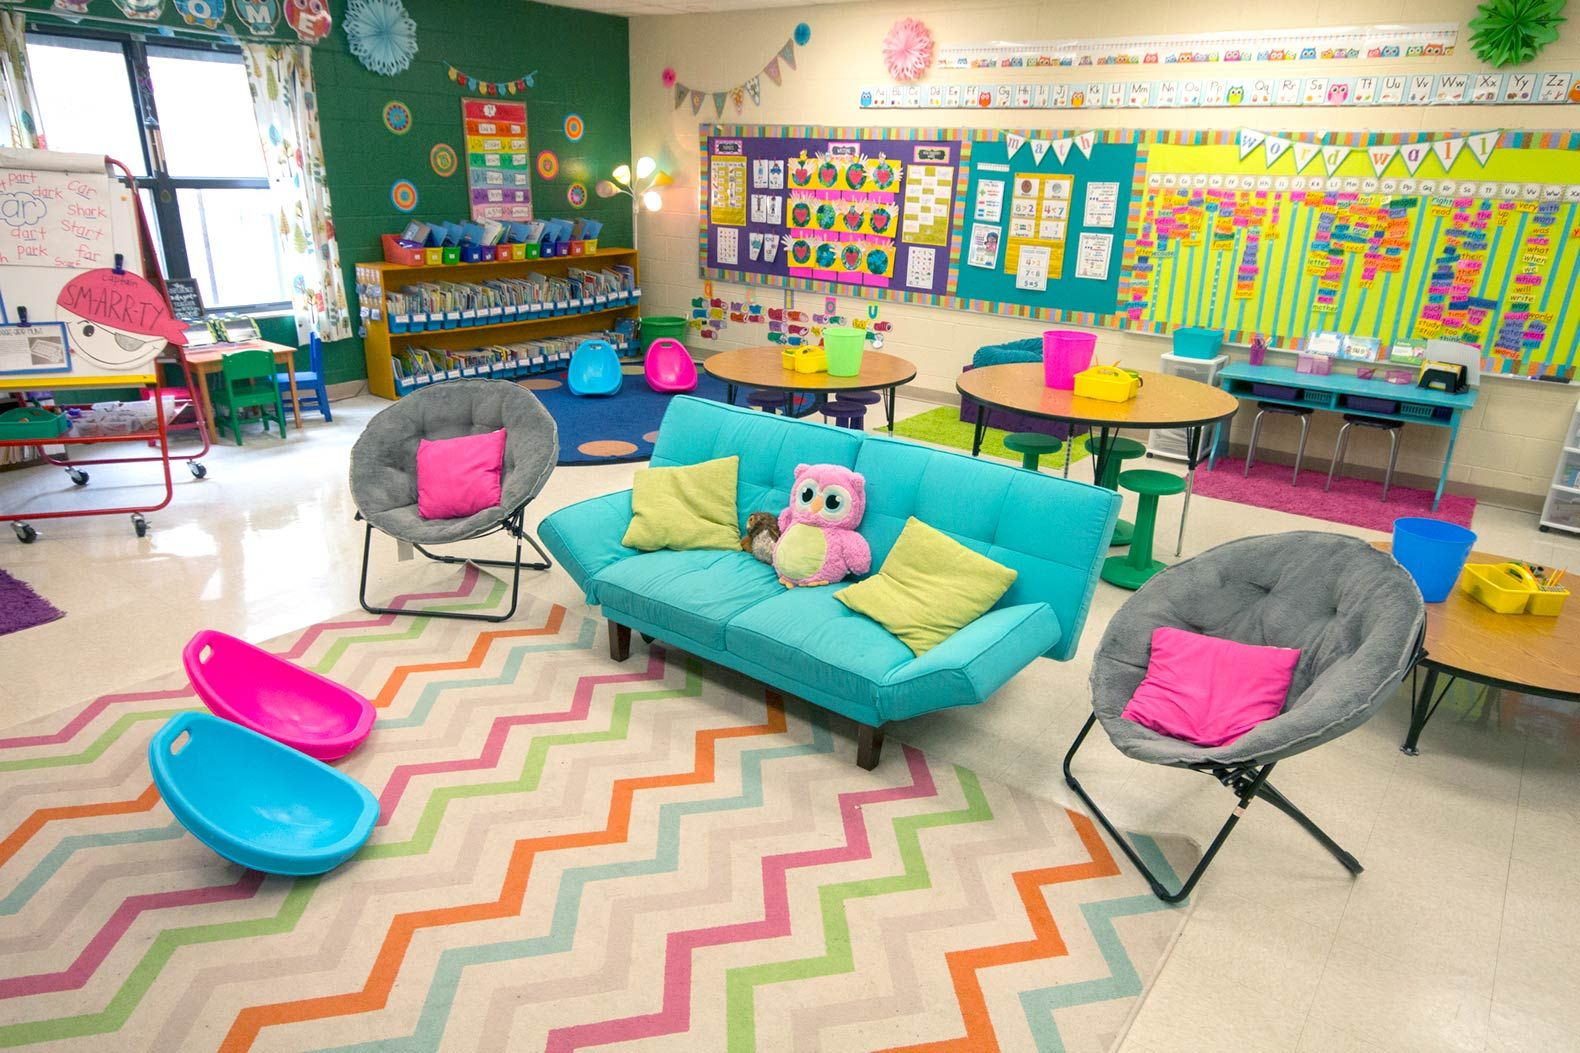 Broomfield's room offers a variety of seating options, from a couch to scoop chairs to wobble stools.